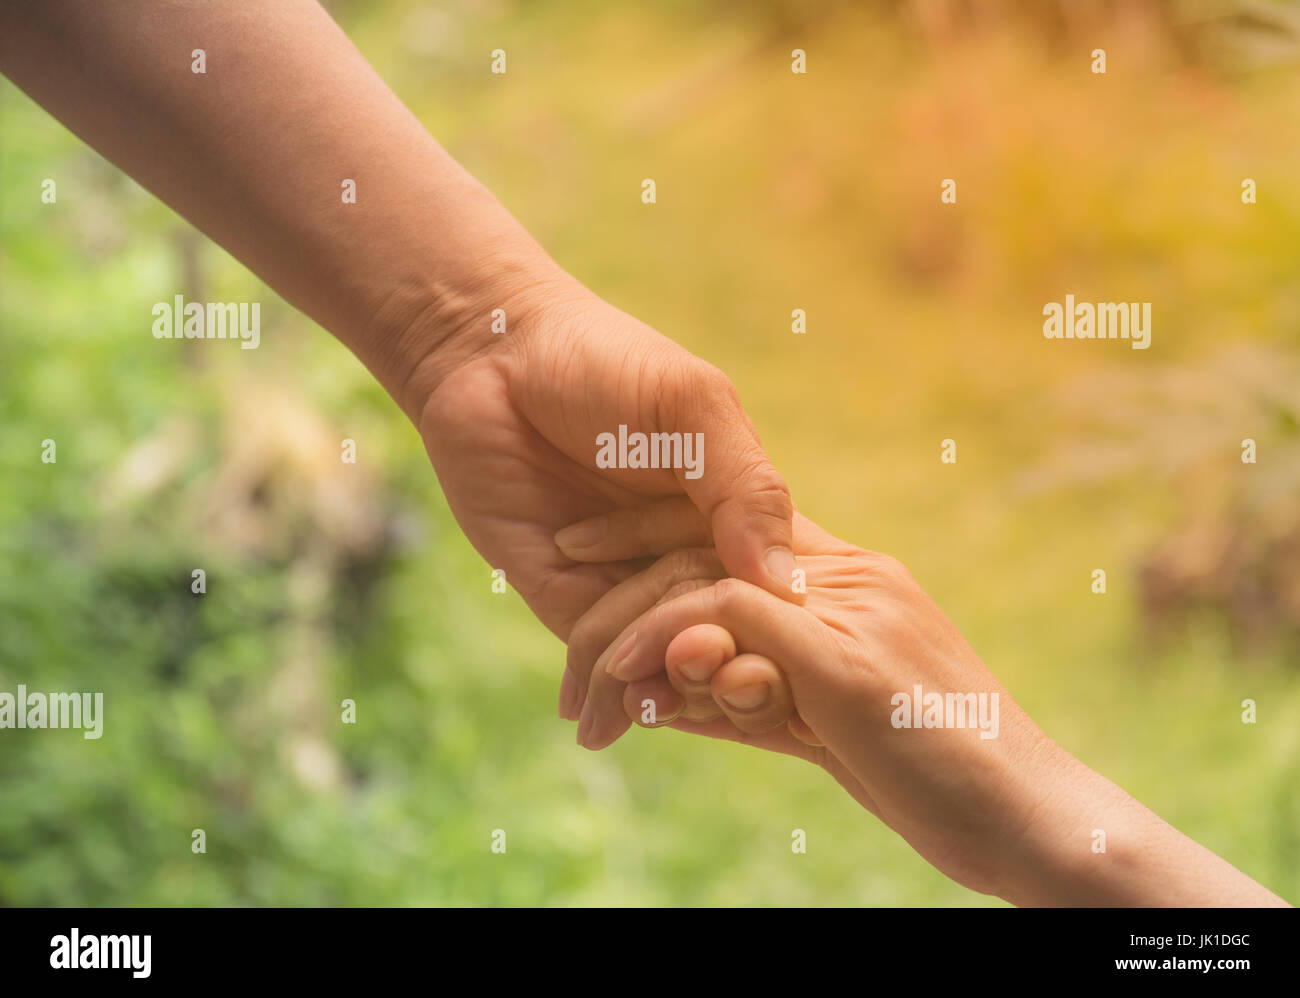 Two pairs of hand touch together, helping hands concept. Helping hand outstretched for help. Stock Photo